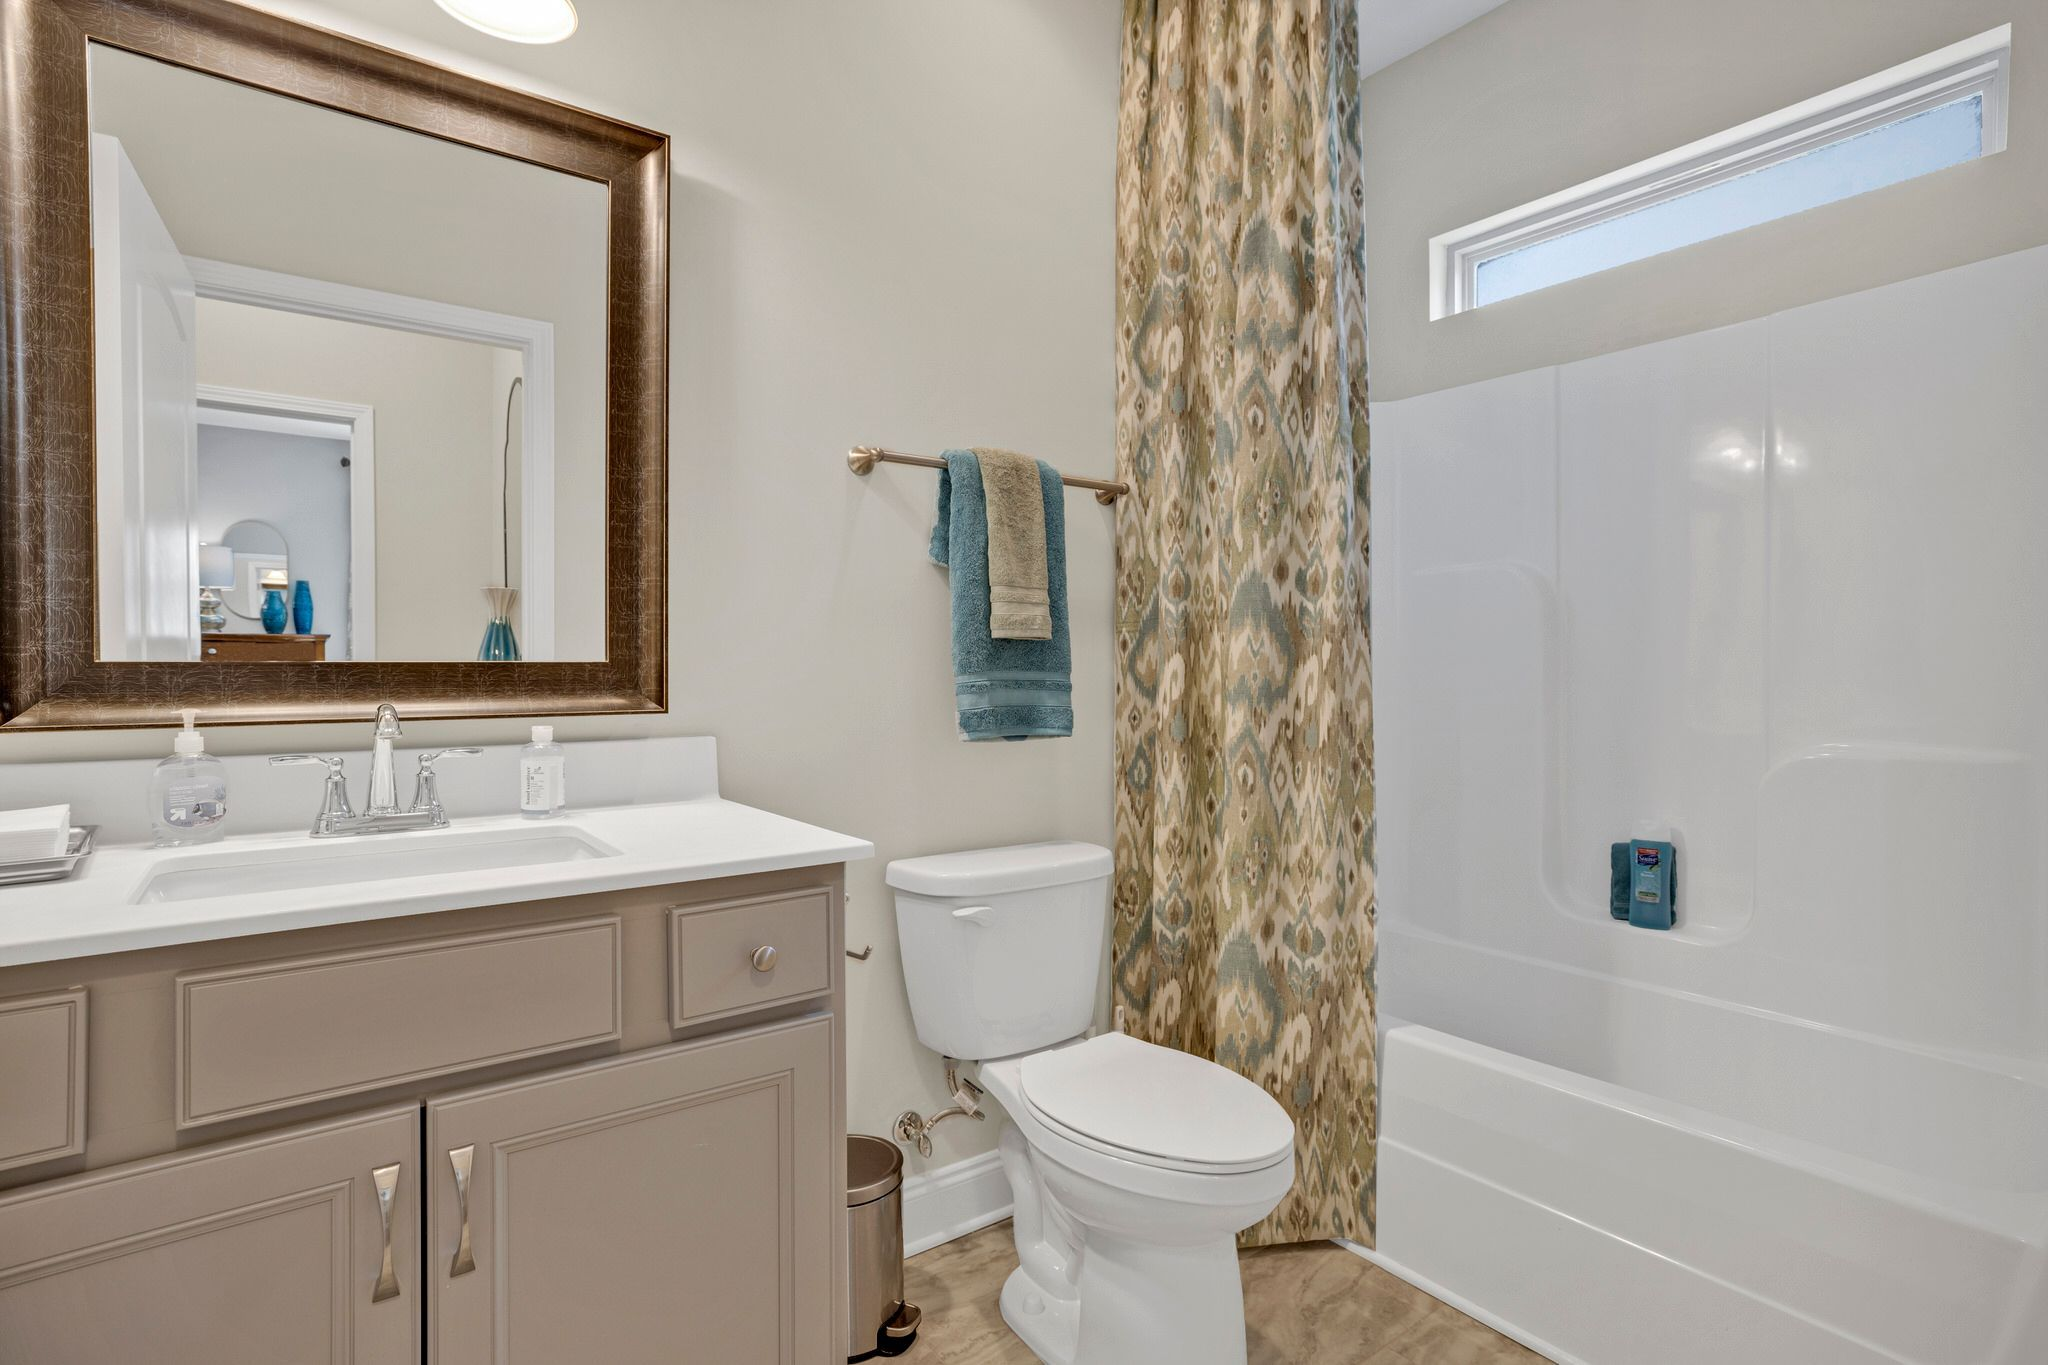 Bathroom featured in The Georgetown By Goodall Homes in Nashville, TN